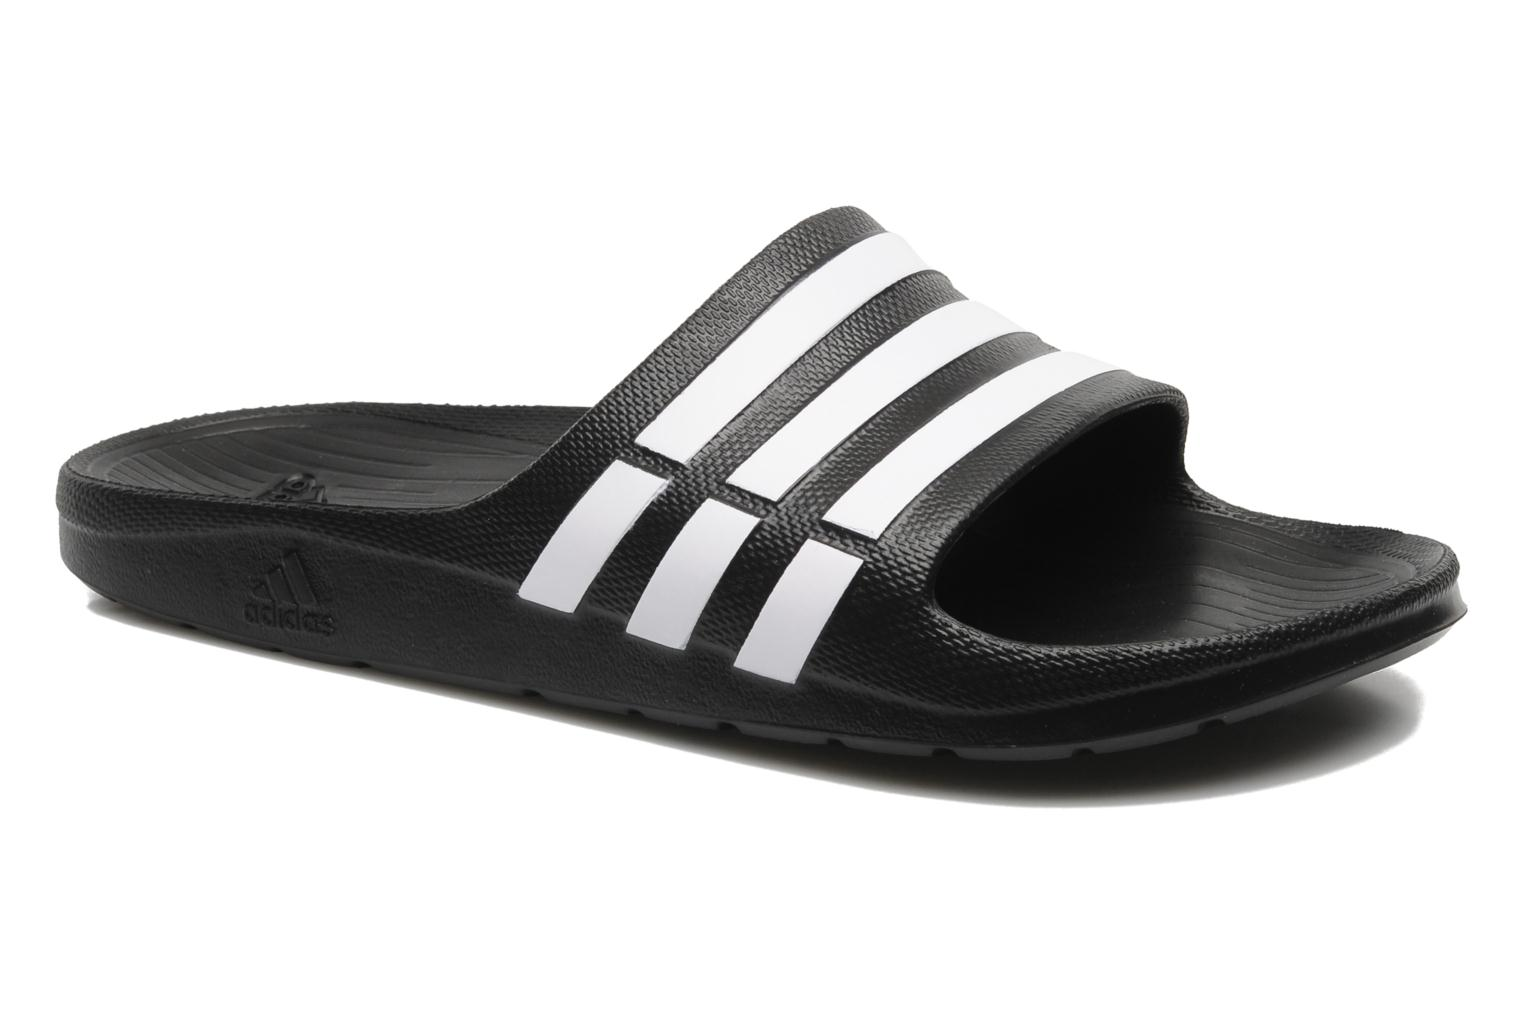 Duramo Slide by Adidas Performance